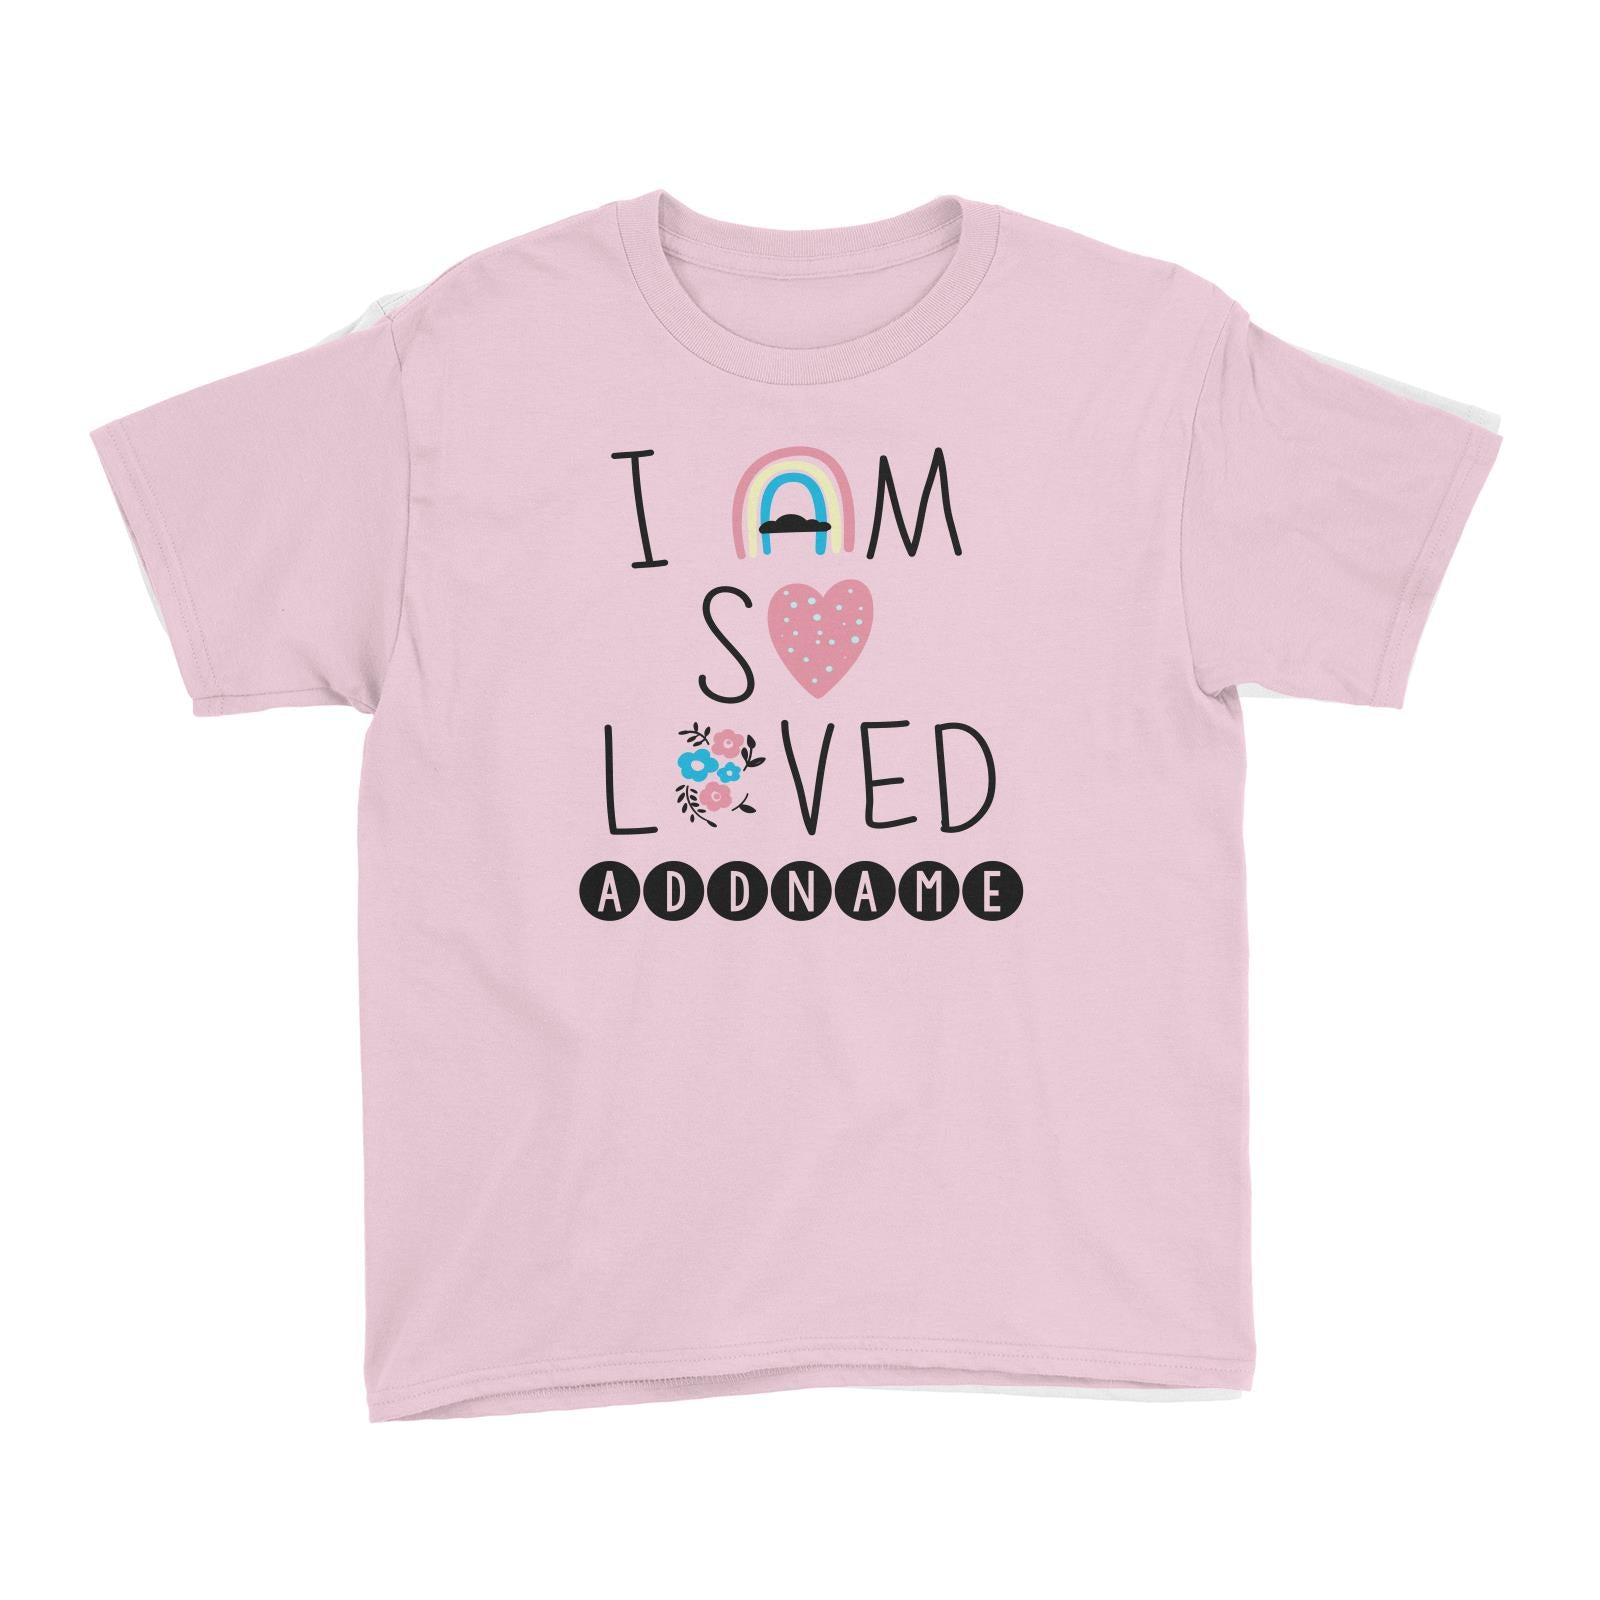 Children's Day Gift Series I Am So Loved Addname Kid's T-Shirt